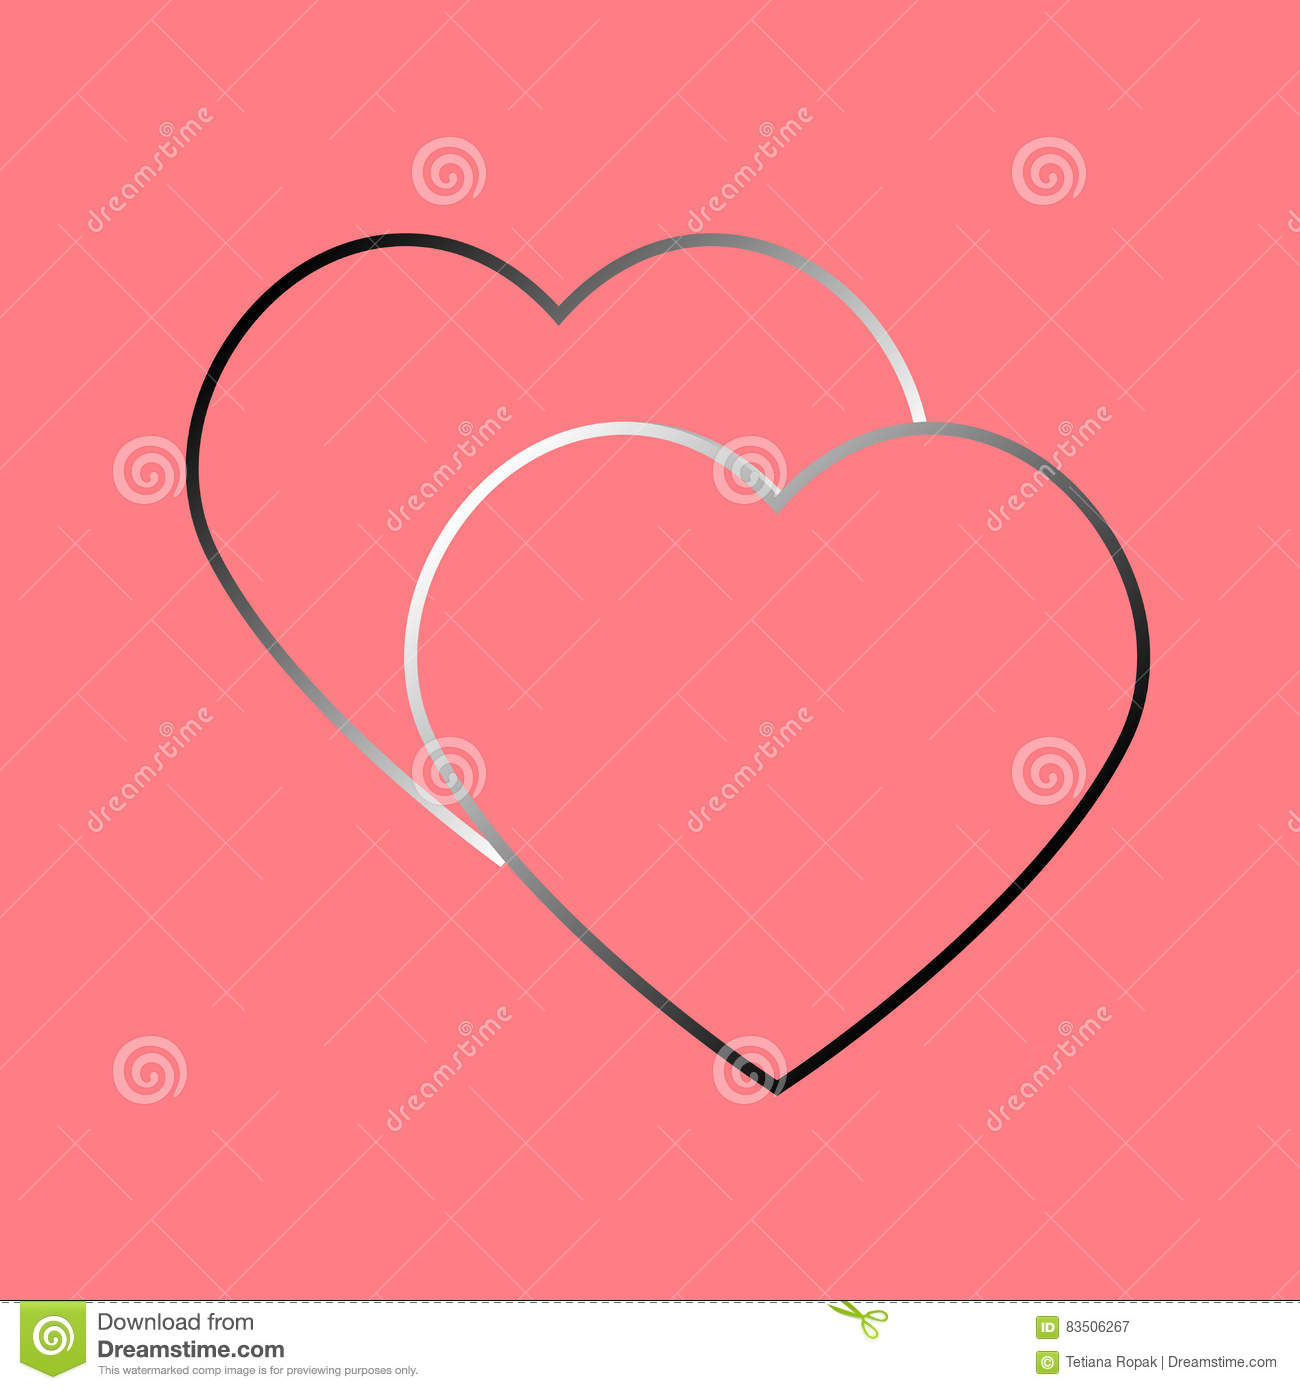 Abstract Heart Element For Design Vector Illustration For